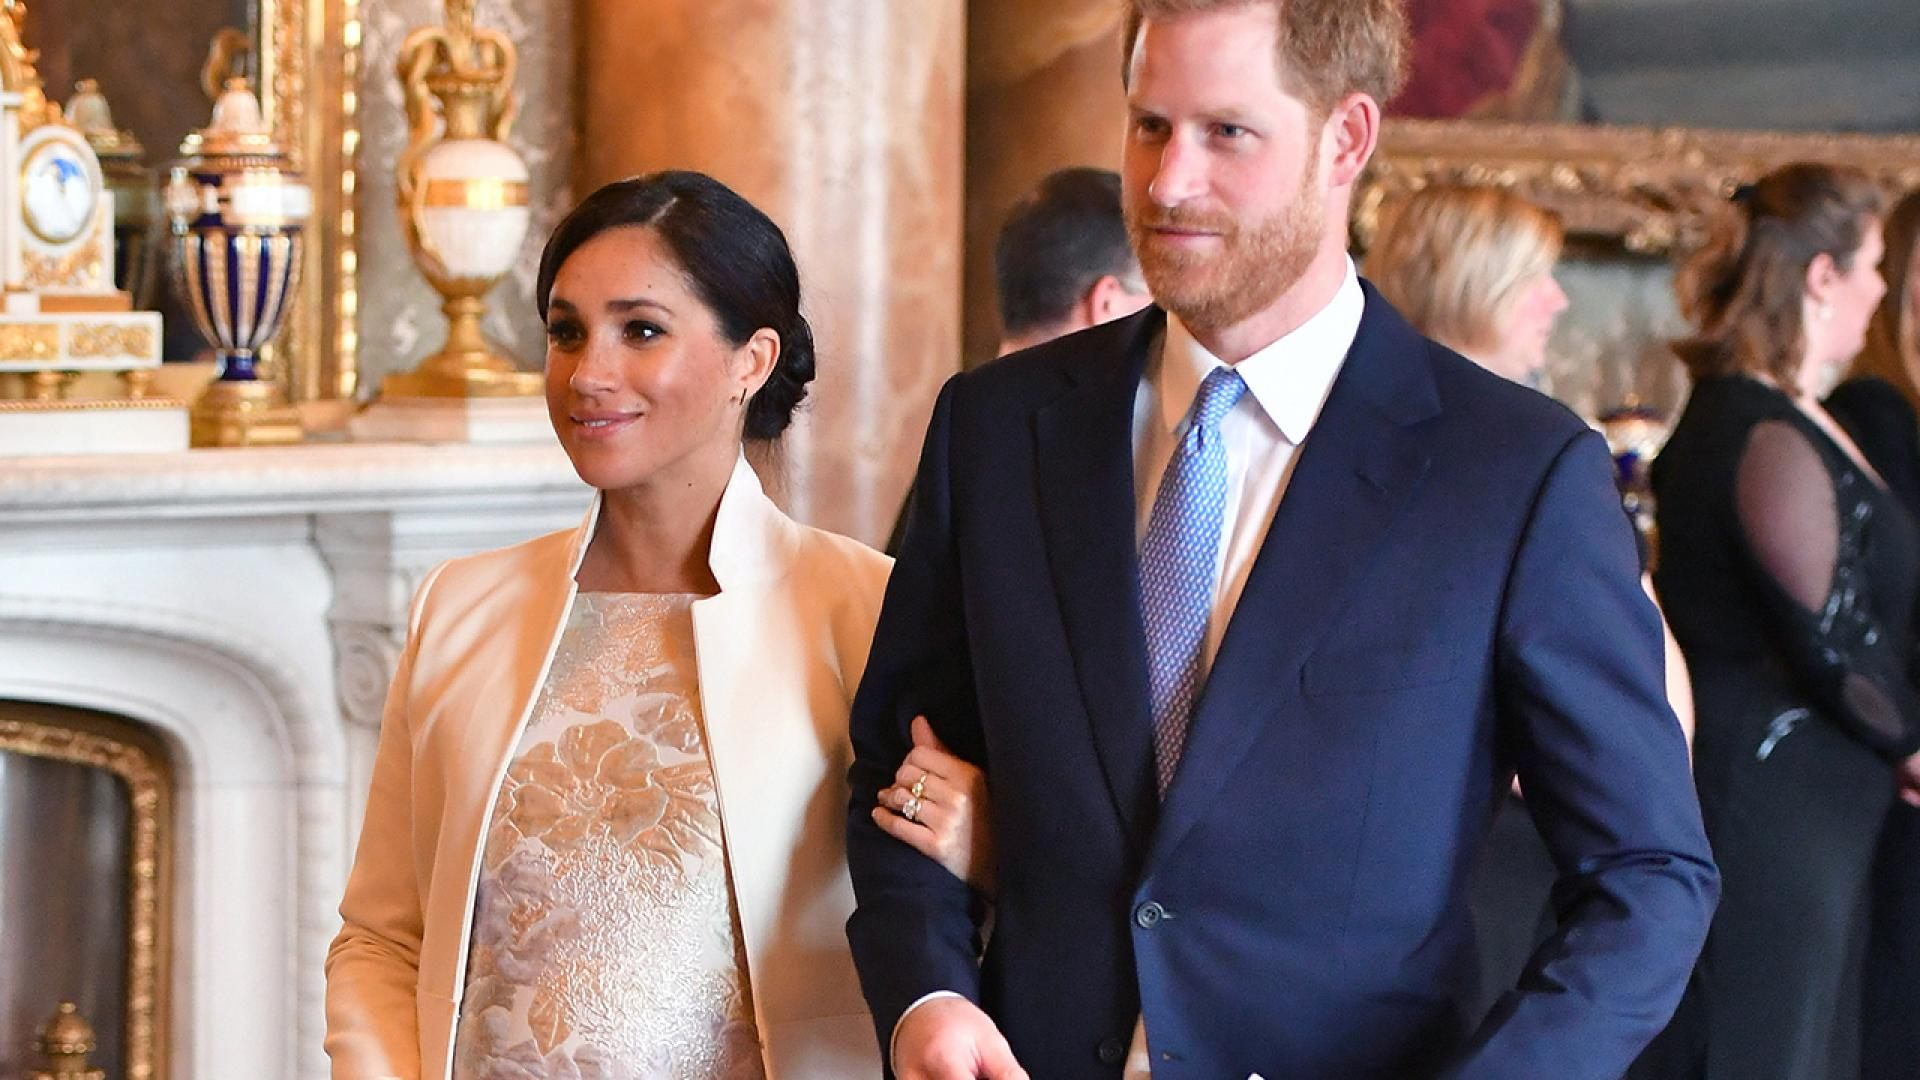 Meghan Markle and Prince Harry walk arm in arm at Buckingham Palace.